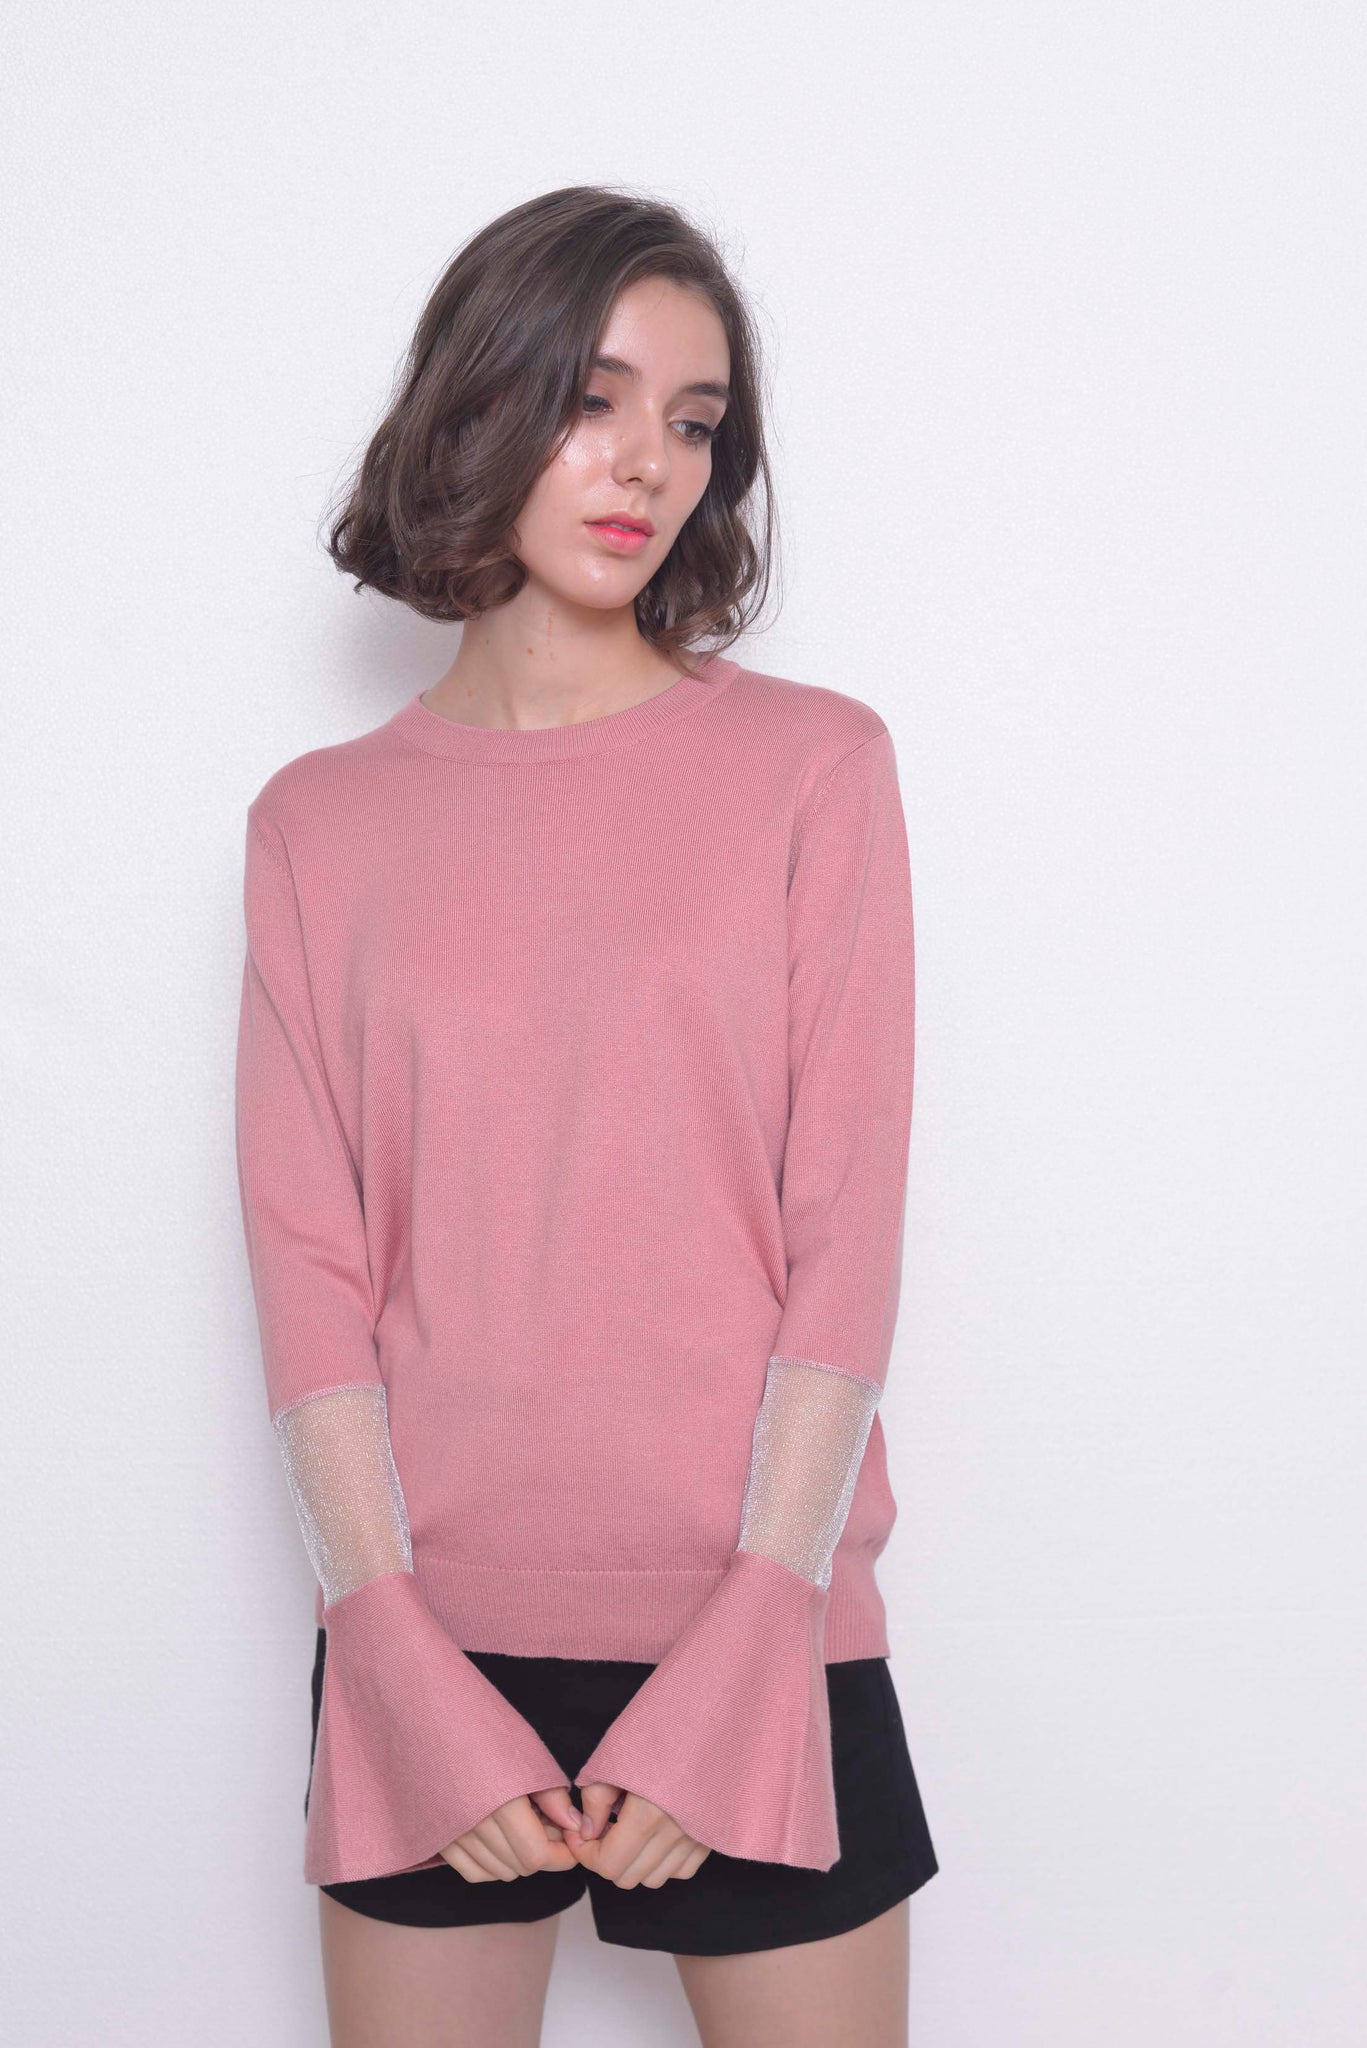 KNIT-Nelia Top in Pink